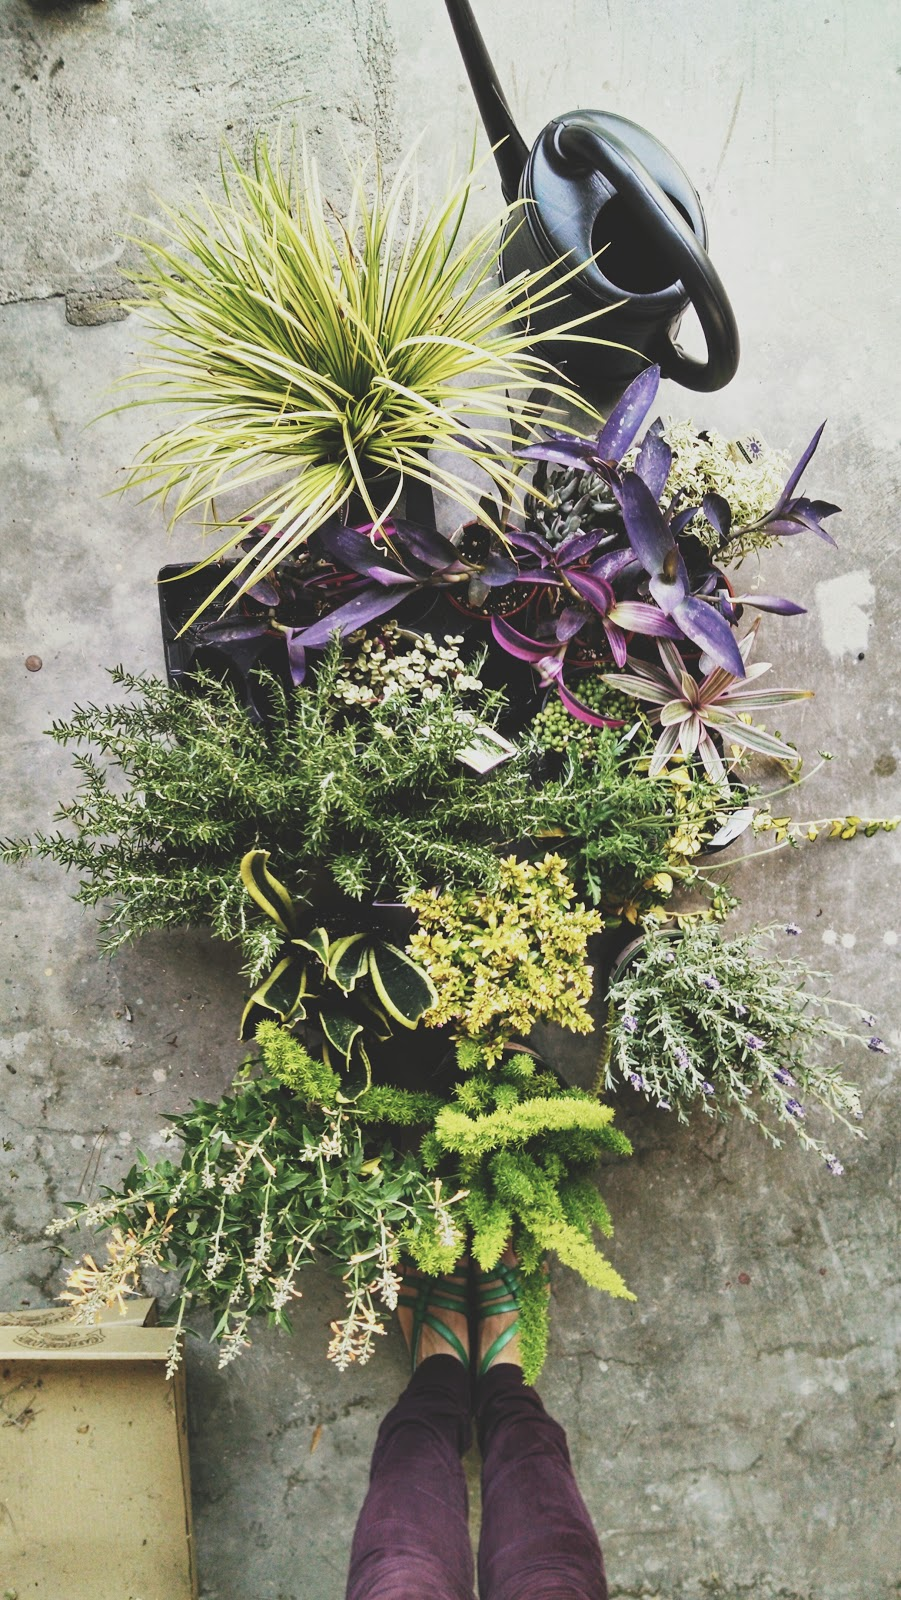 purples and greens, oh my!